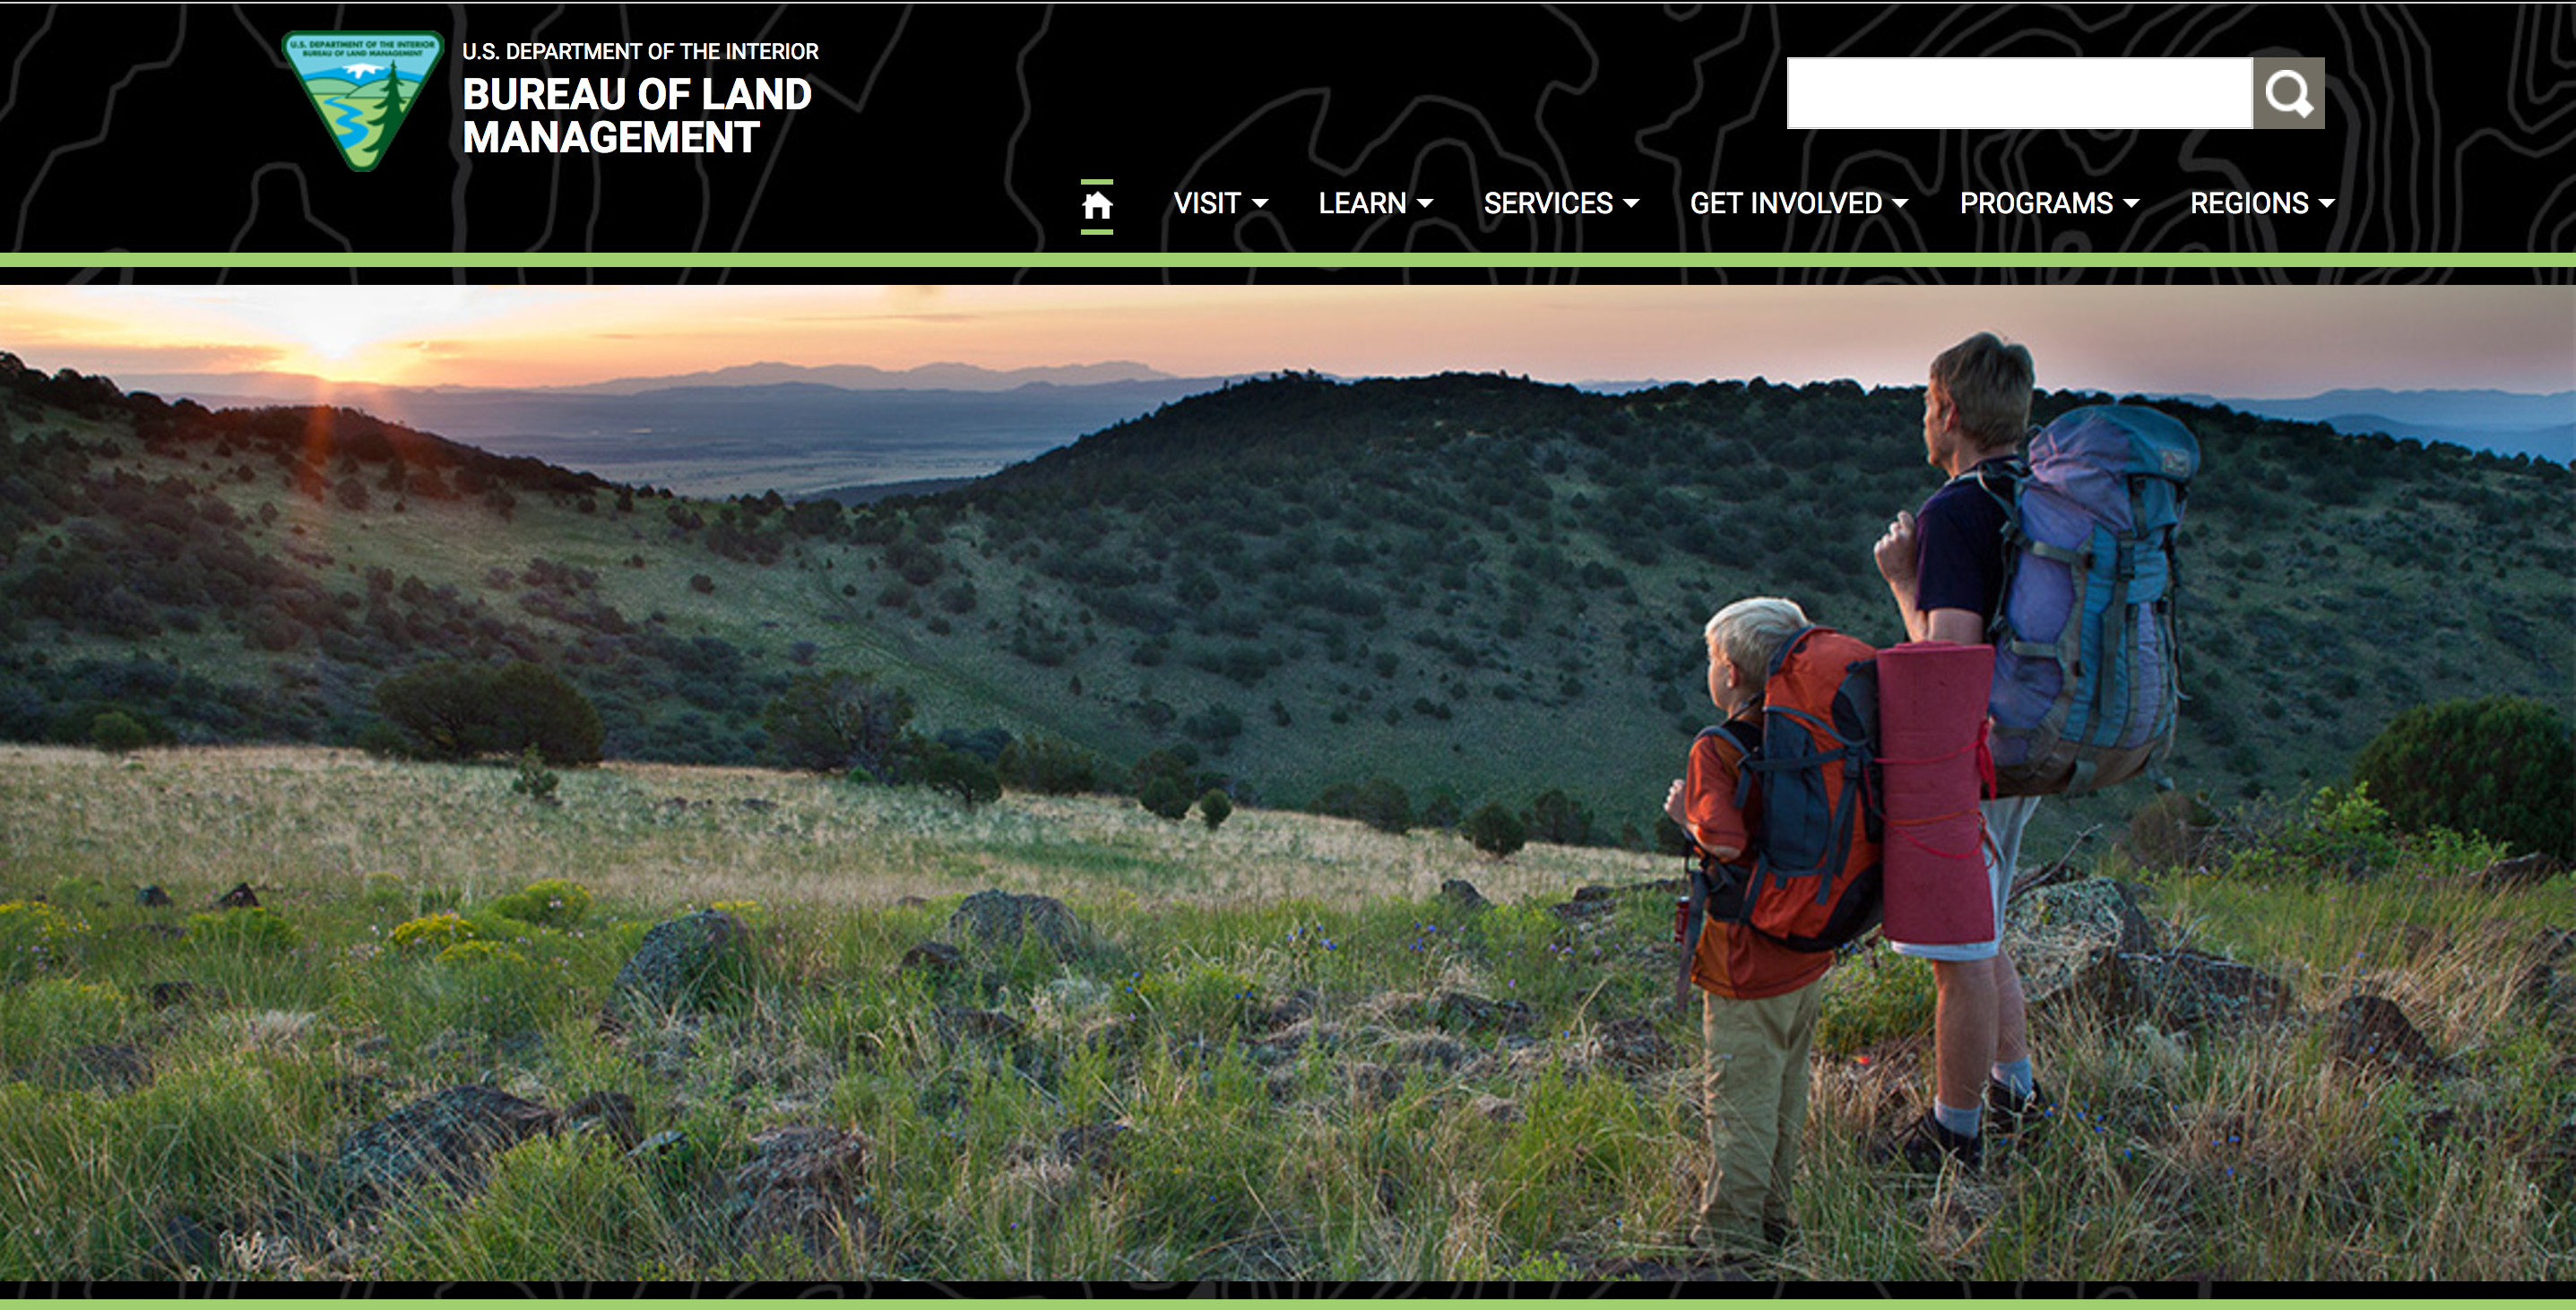 Here's what the BLM front page looked like on April 5.